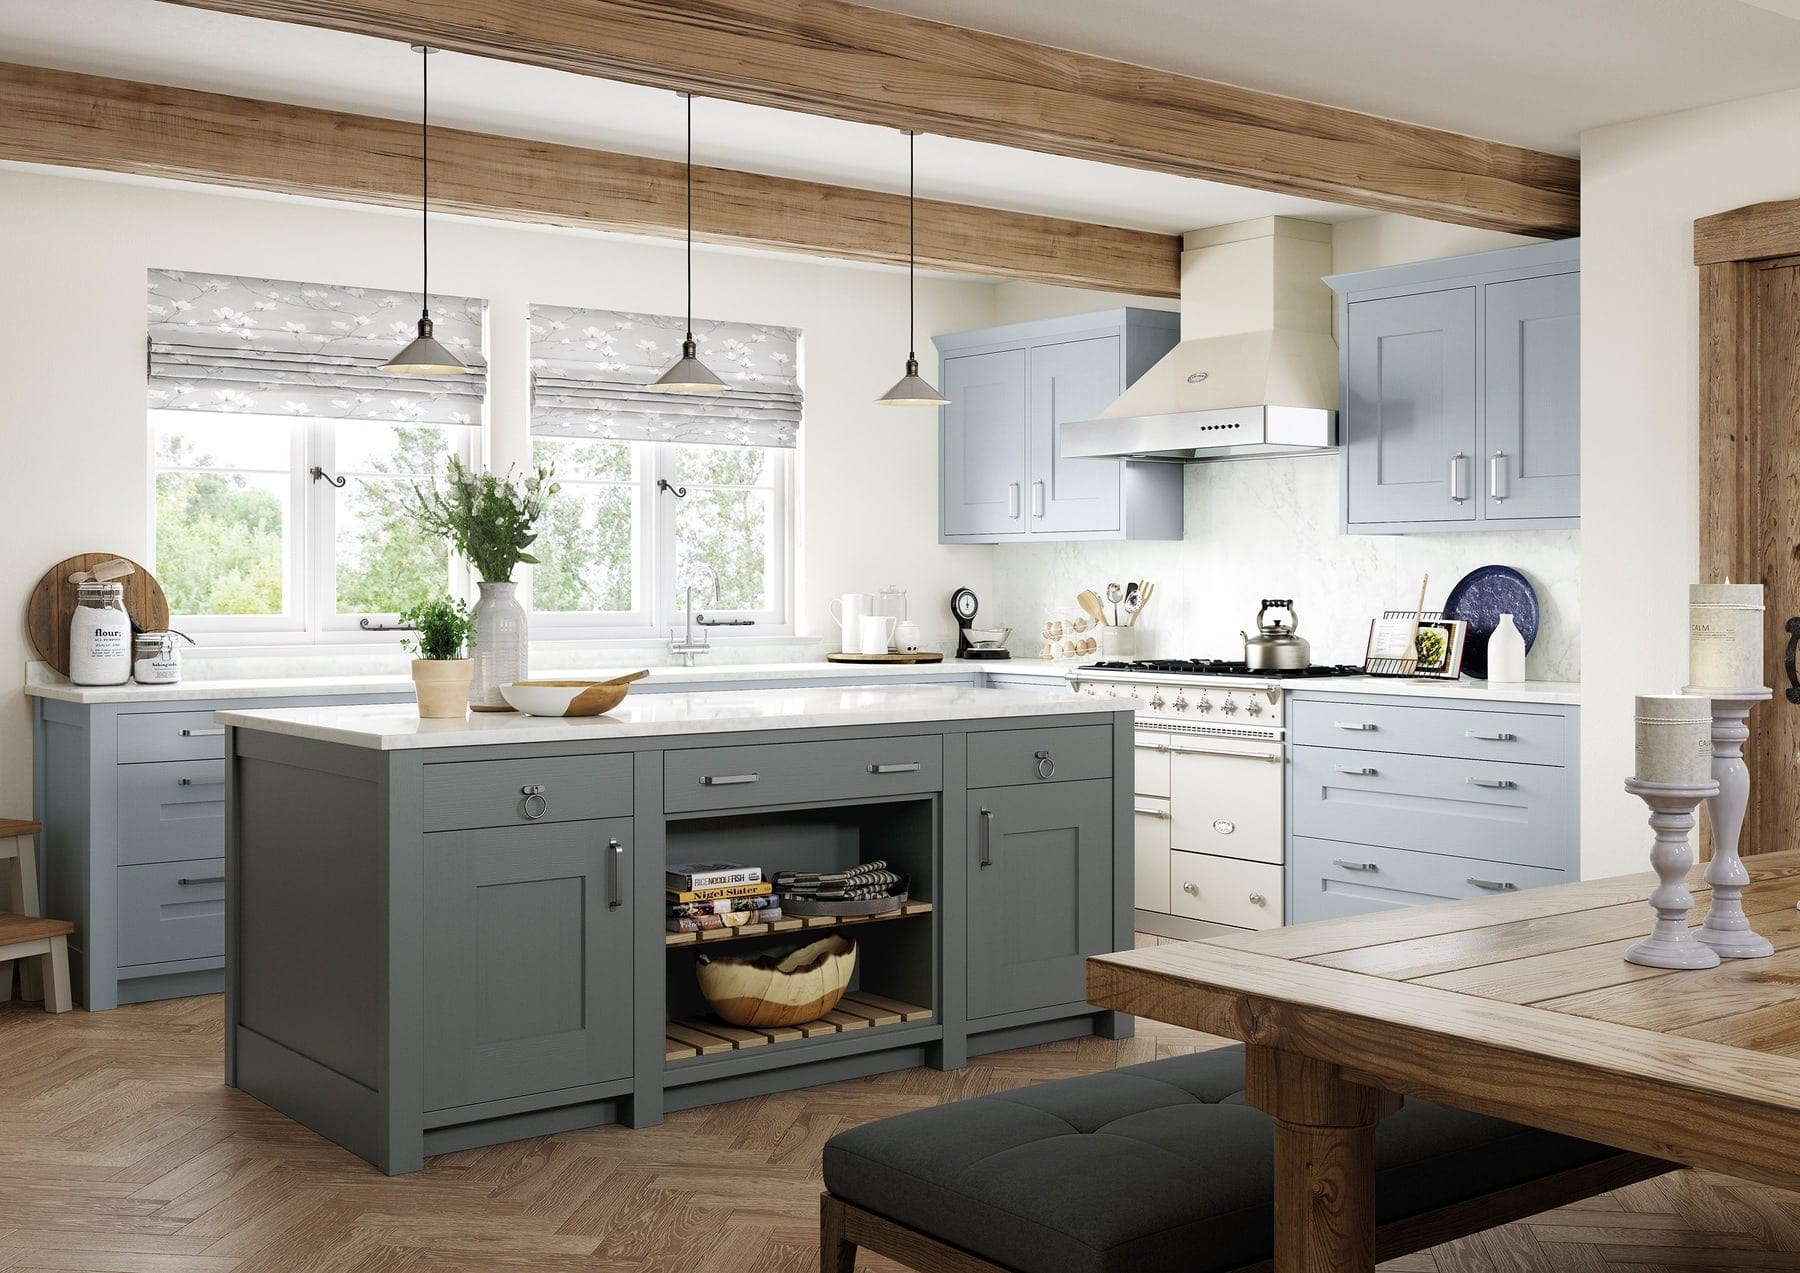 Clonmel Pantry Blue And Gun Metal Grey Shaker L Shaped Kitchen With Island | Colour House Interiors, Caterham